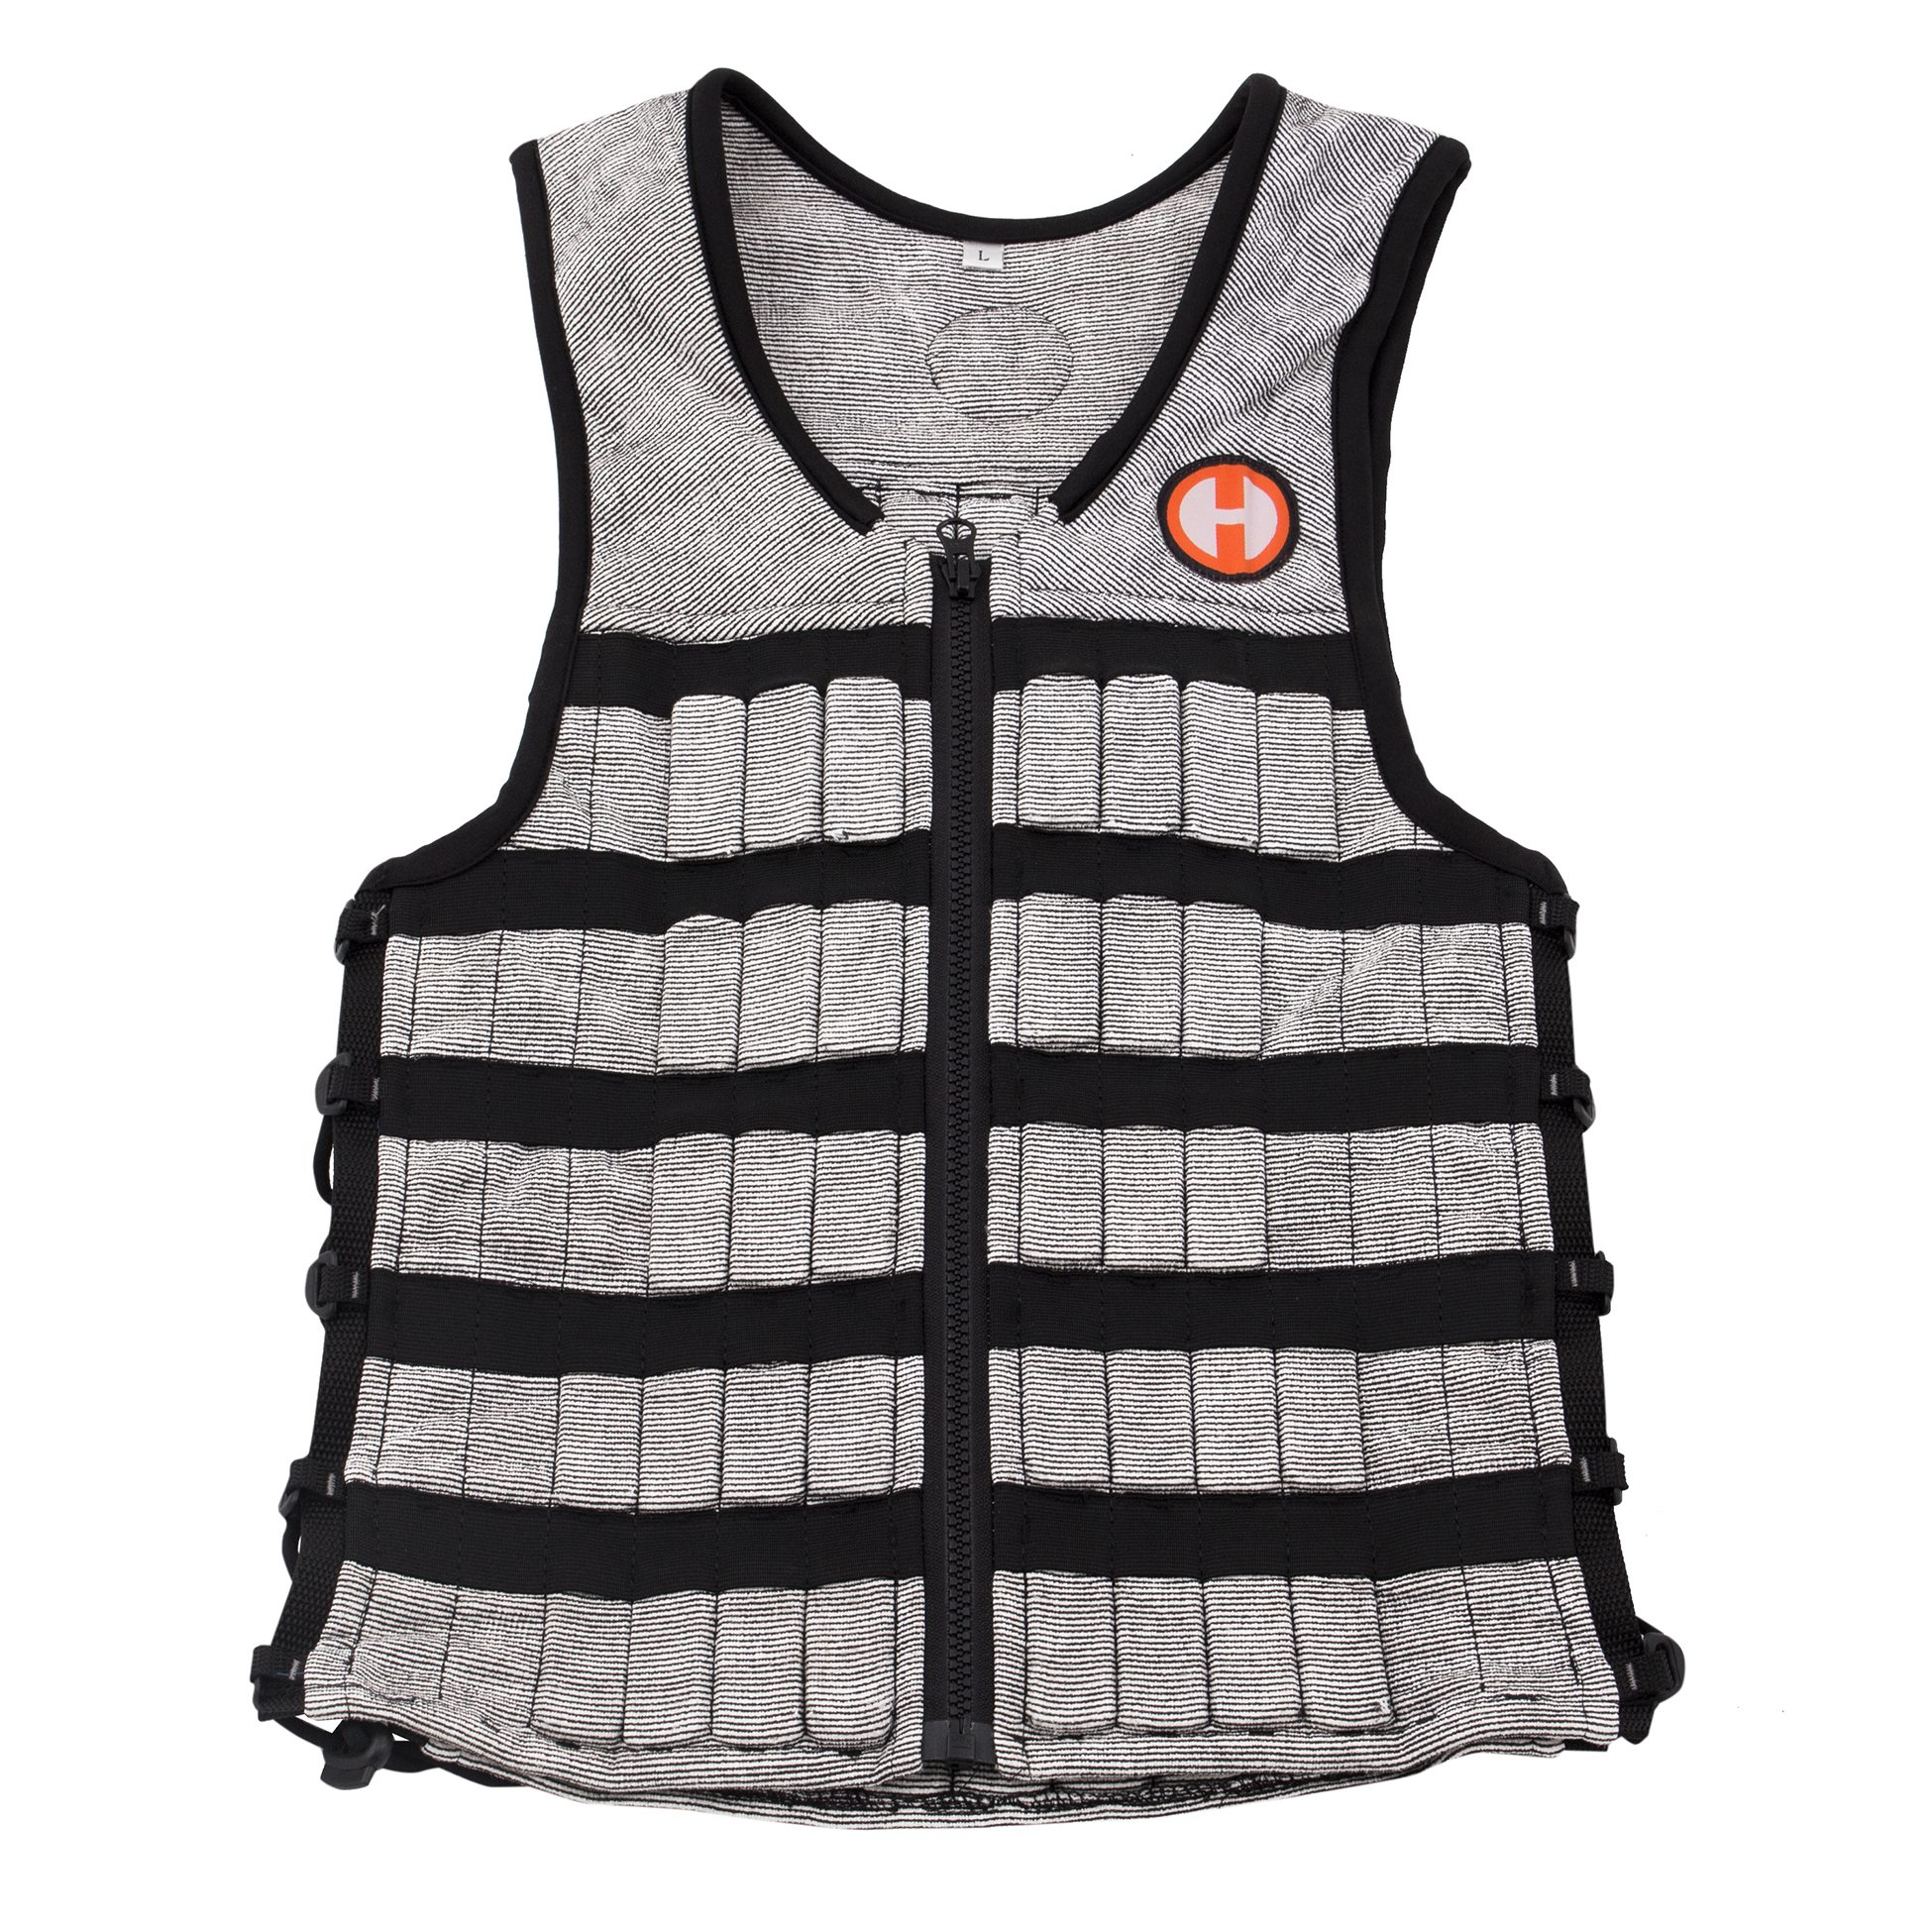 Hyper Vest PRO Weighted Vest